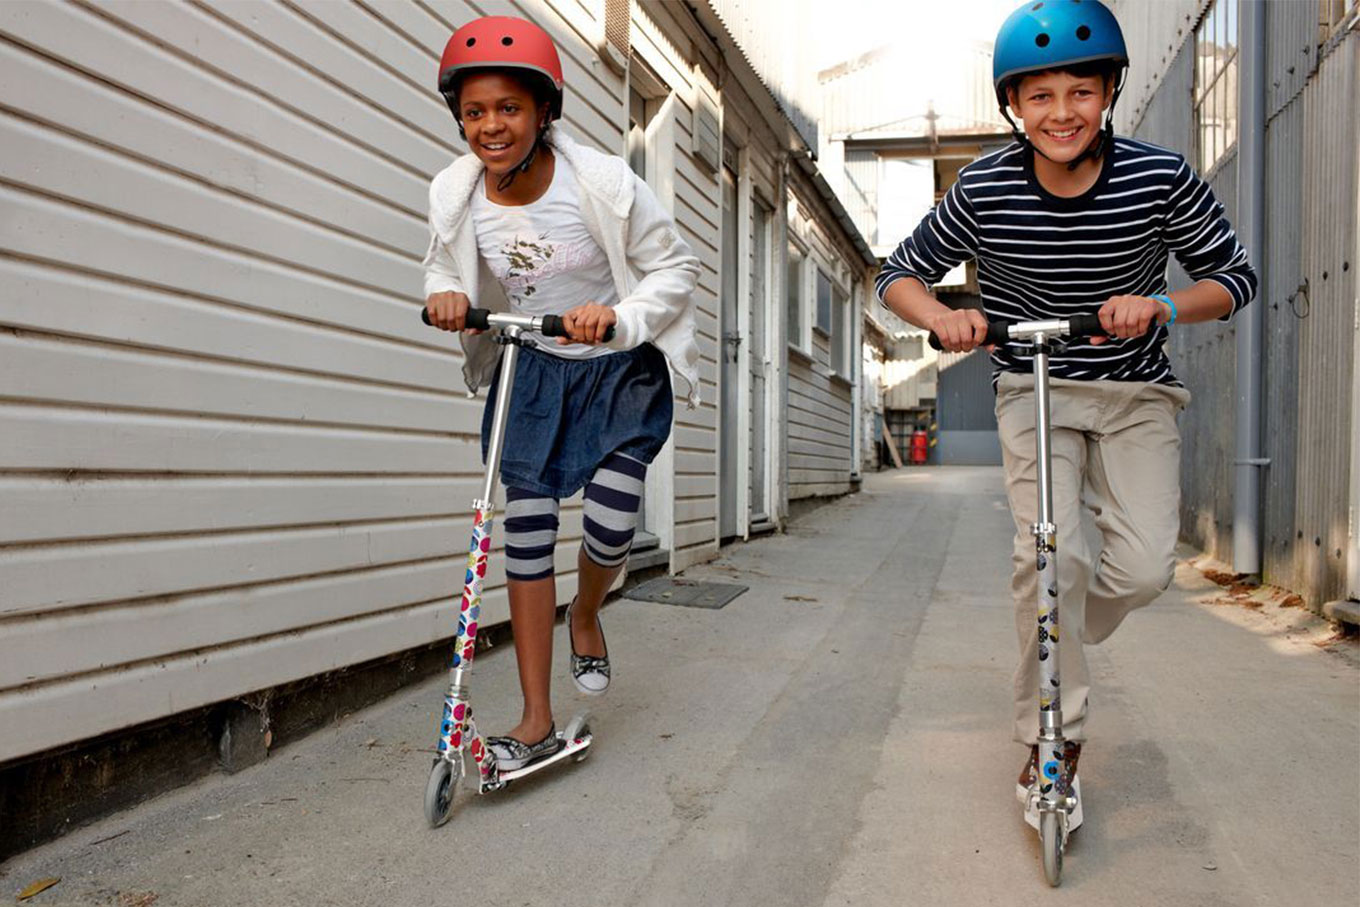 Scooters-for-teenagers-02.jpg